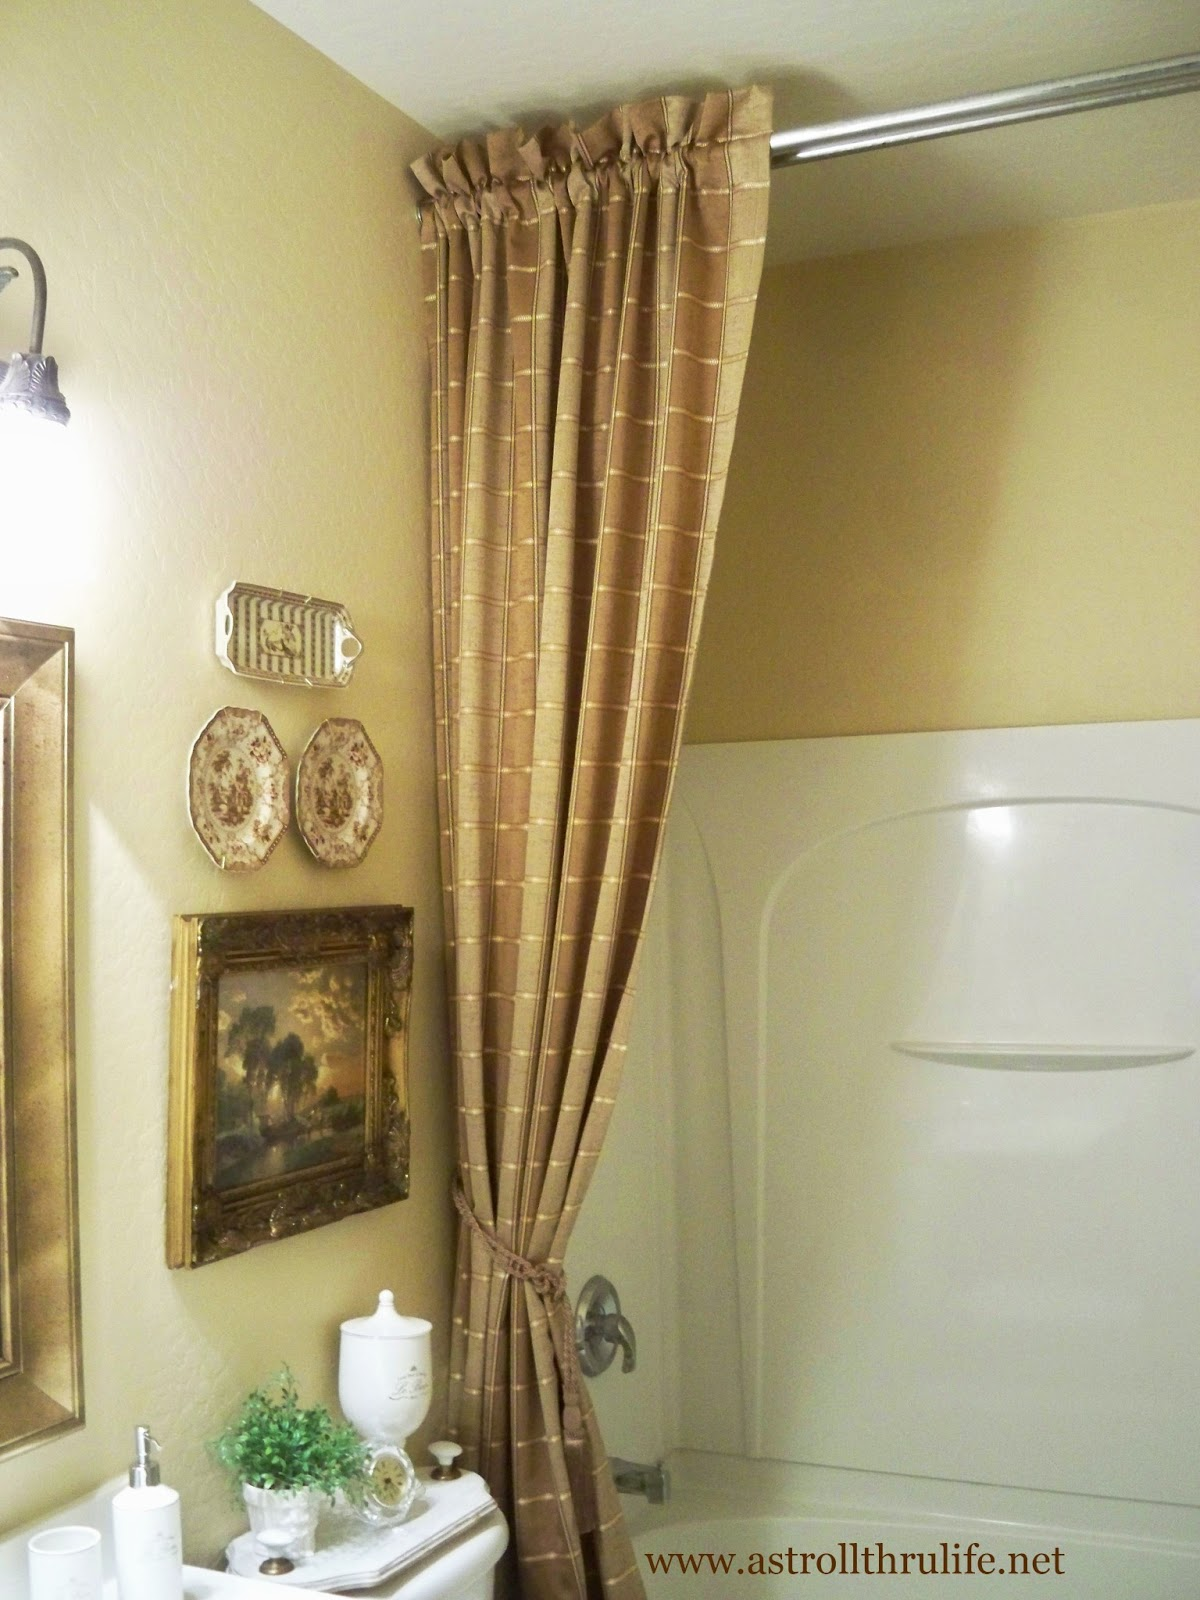 A Stroll Thru Life: Answers To How I Did The Shower Curtain